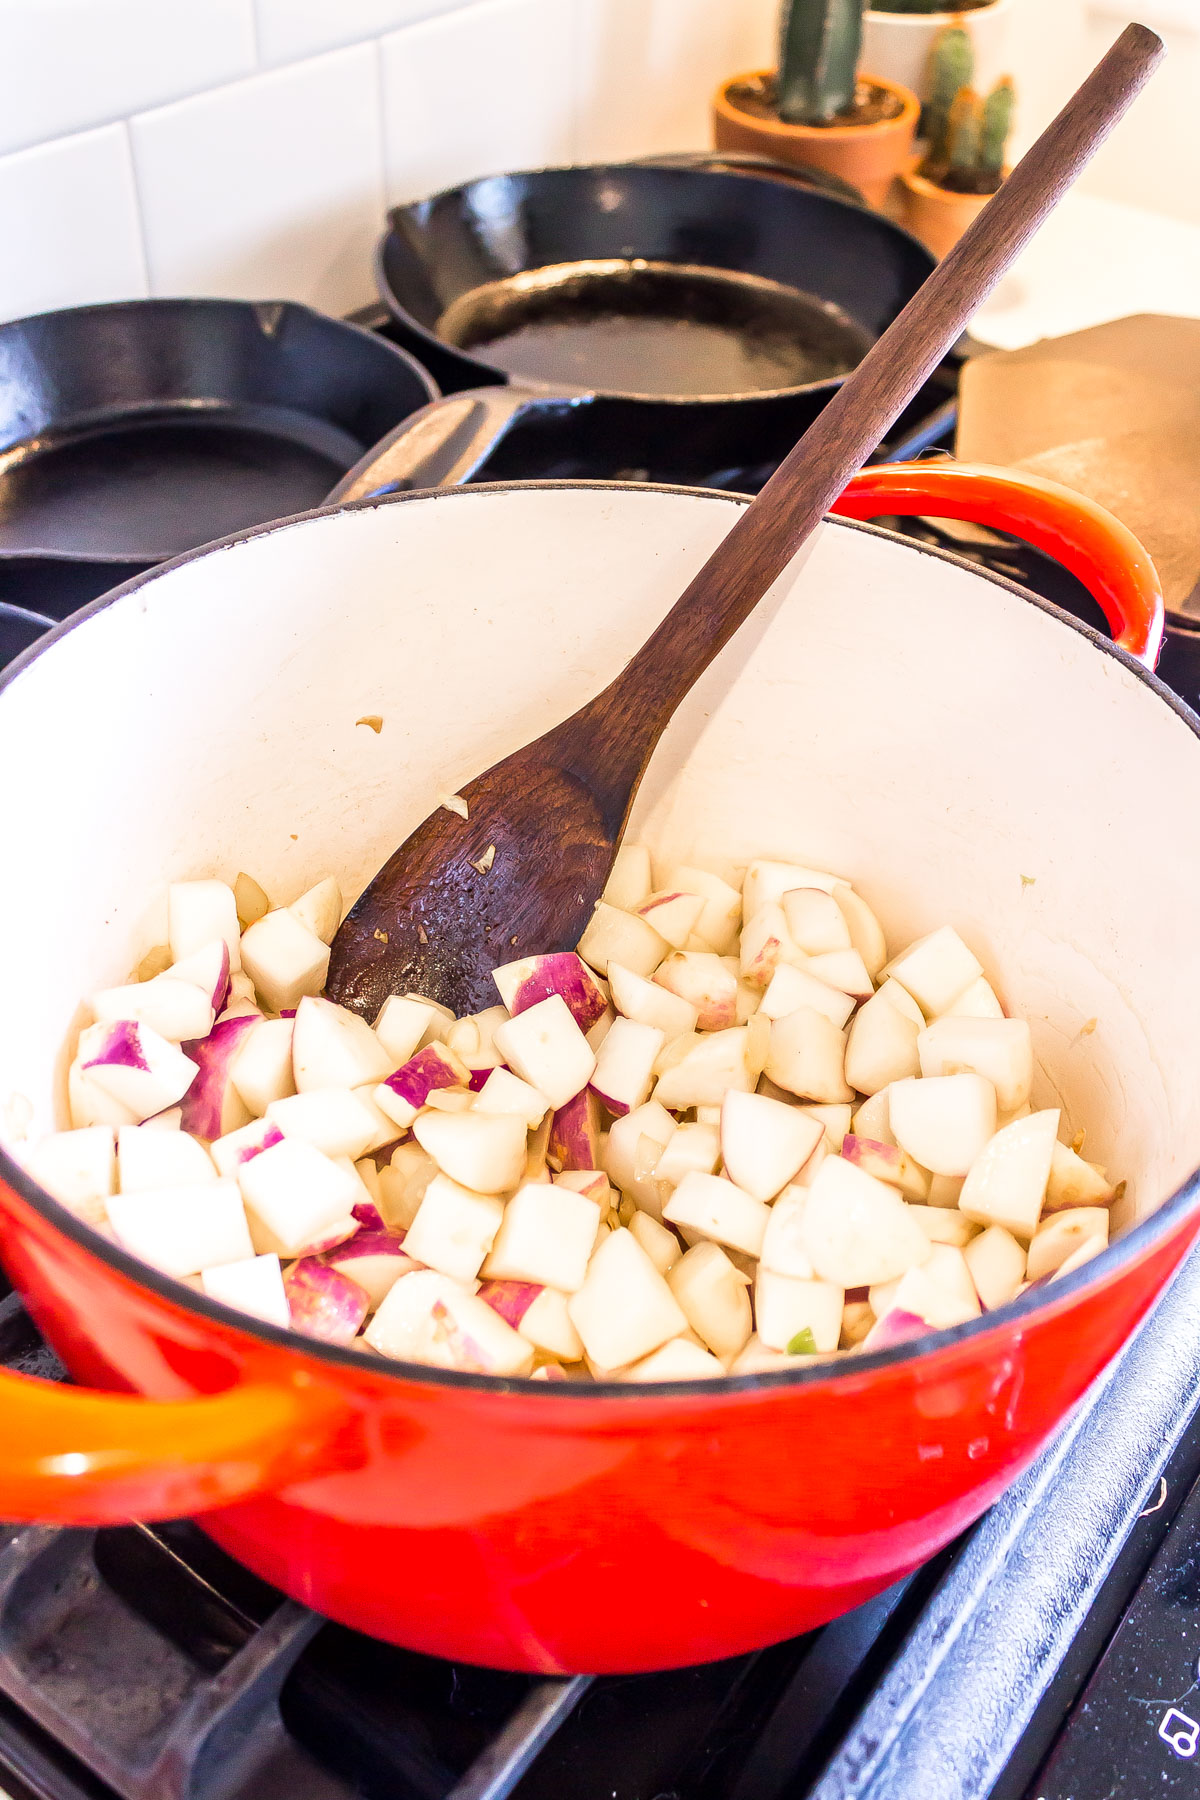 Cut turnips in a large dutch oven atop a gas range